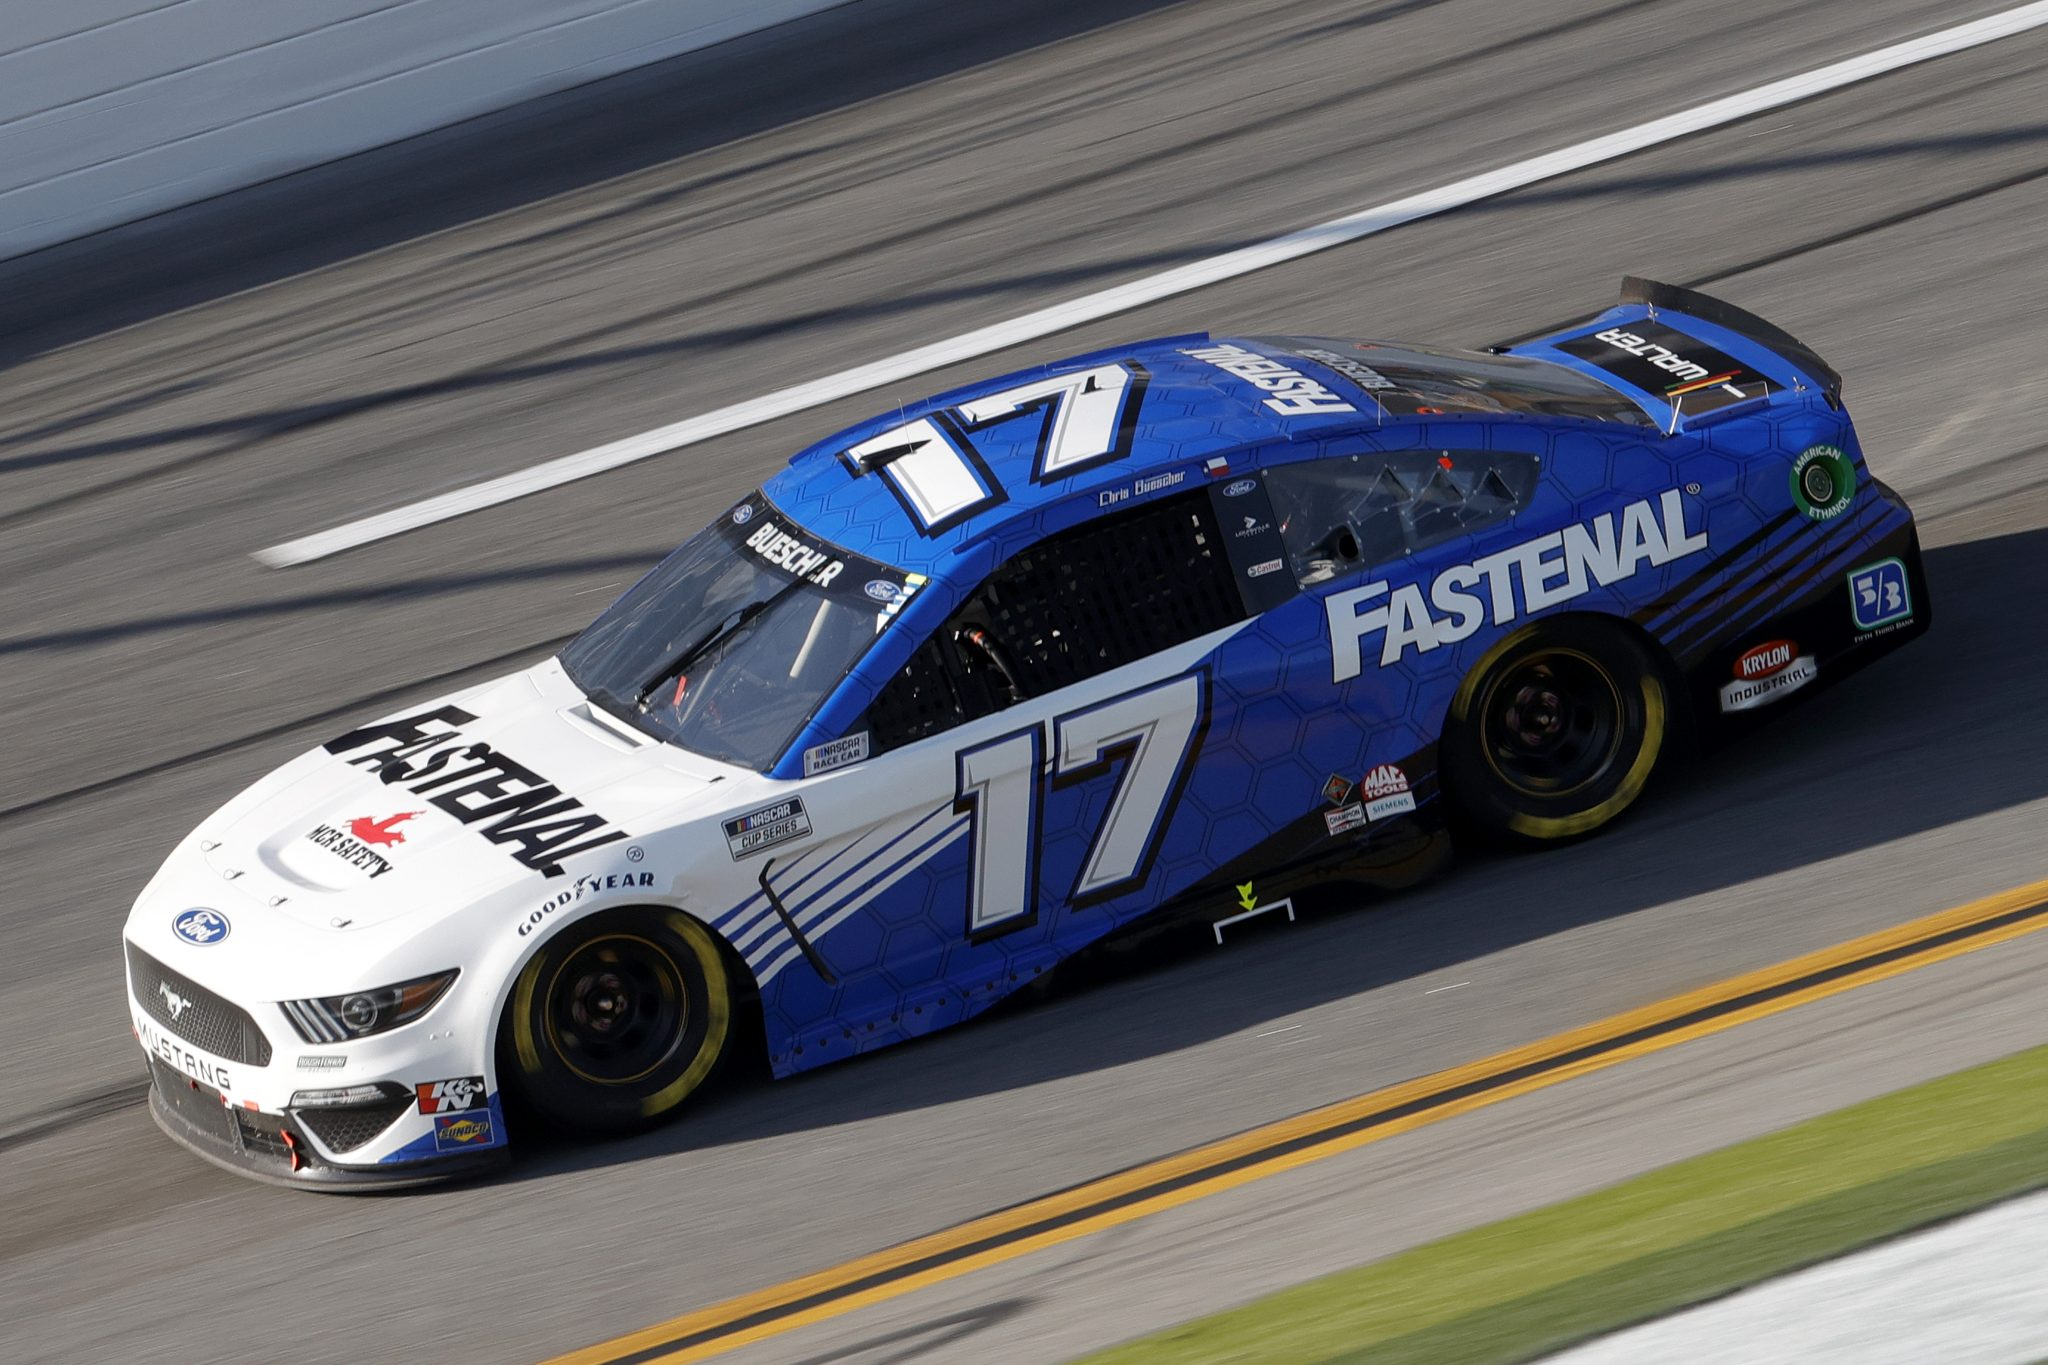 DAYTONA BEACH, FLORIDA - FEBRUARY 21: Chris Buescher, driver of the #17 Fastenal Ford, drives during the NASCAR Cup Series O'Reilly Auto Parts 253 at Daytona International Speedway on February 21, 2021 in Daytona Beach, Florida. (Photo by Chris Graythen/Getty Images) | Getty Images